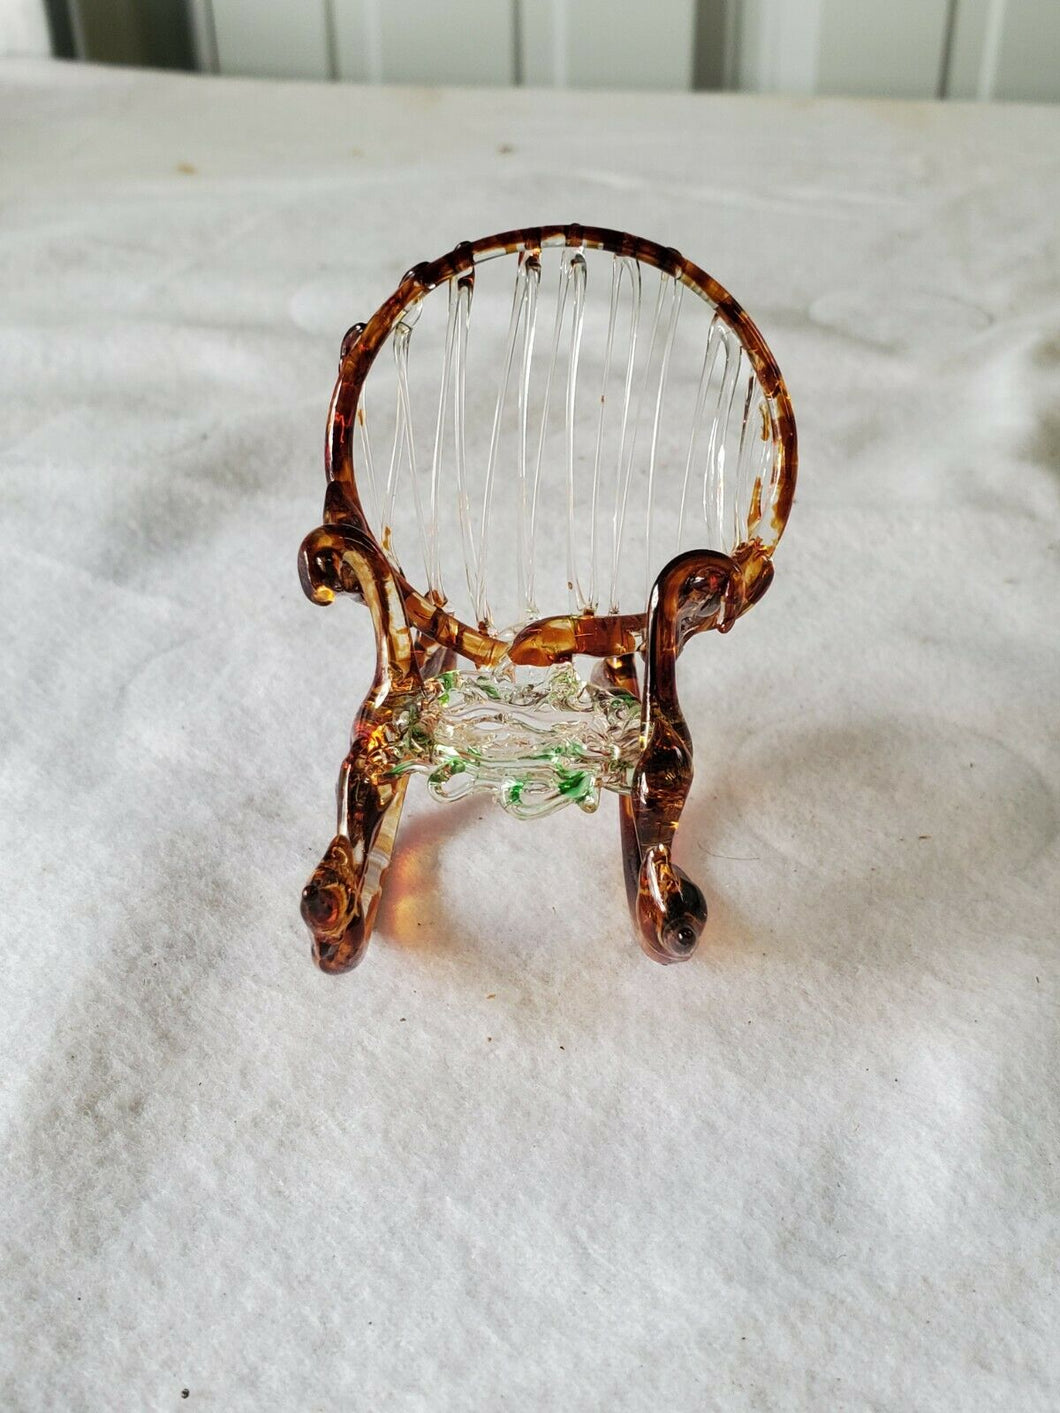 Vintage Hand Blown/Spun Brown Glass Rocking Chair Figurine Real Rocking Movement